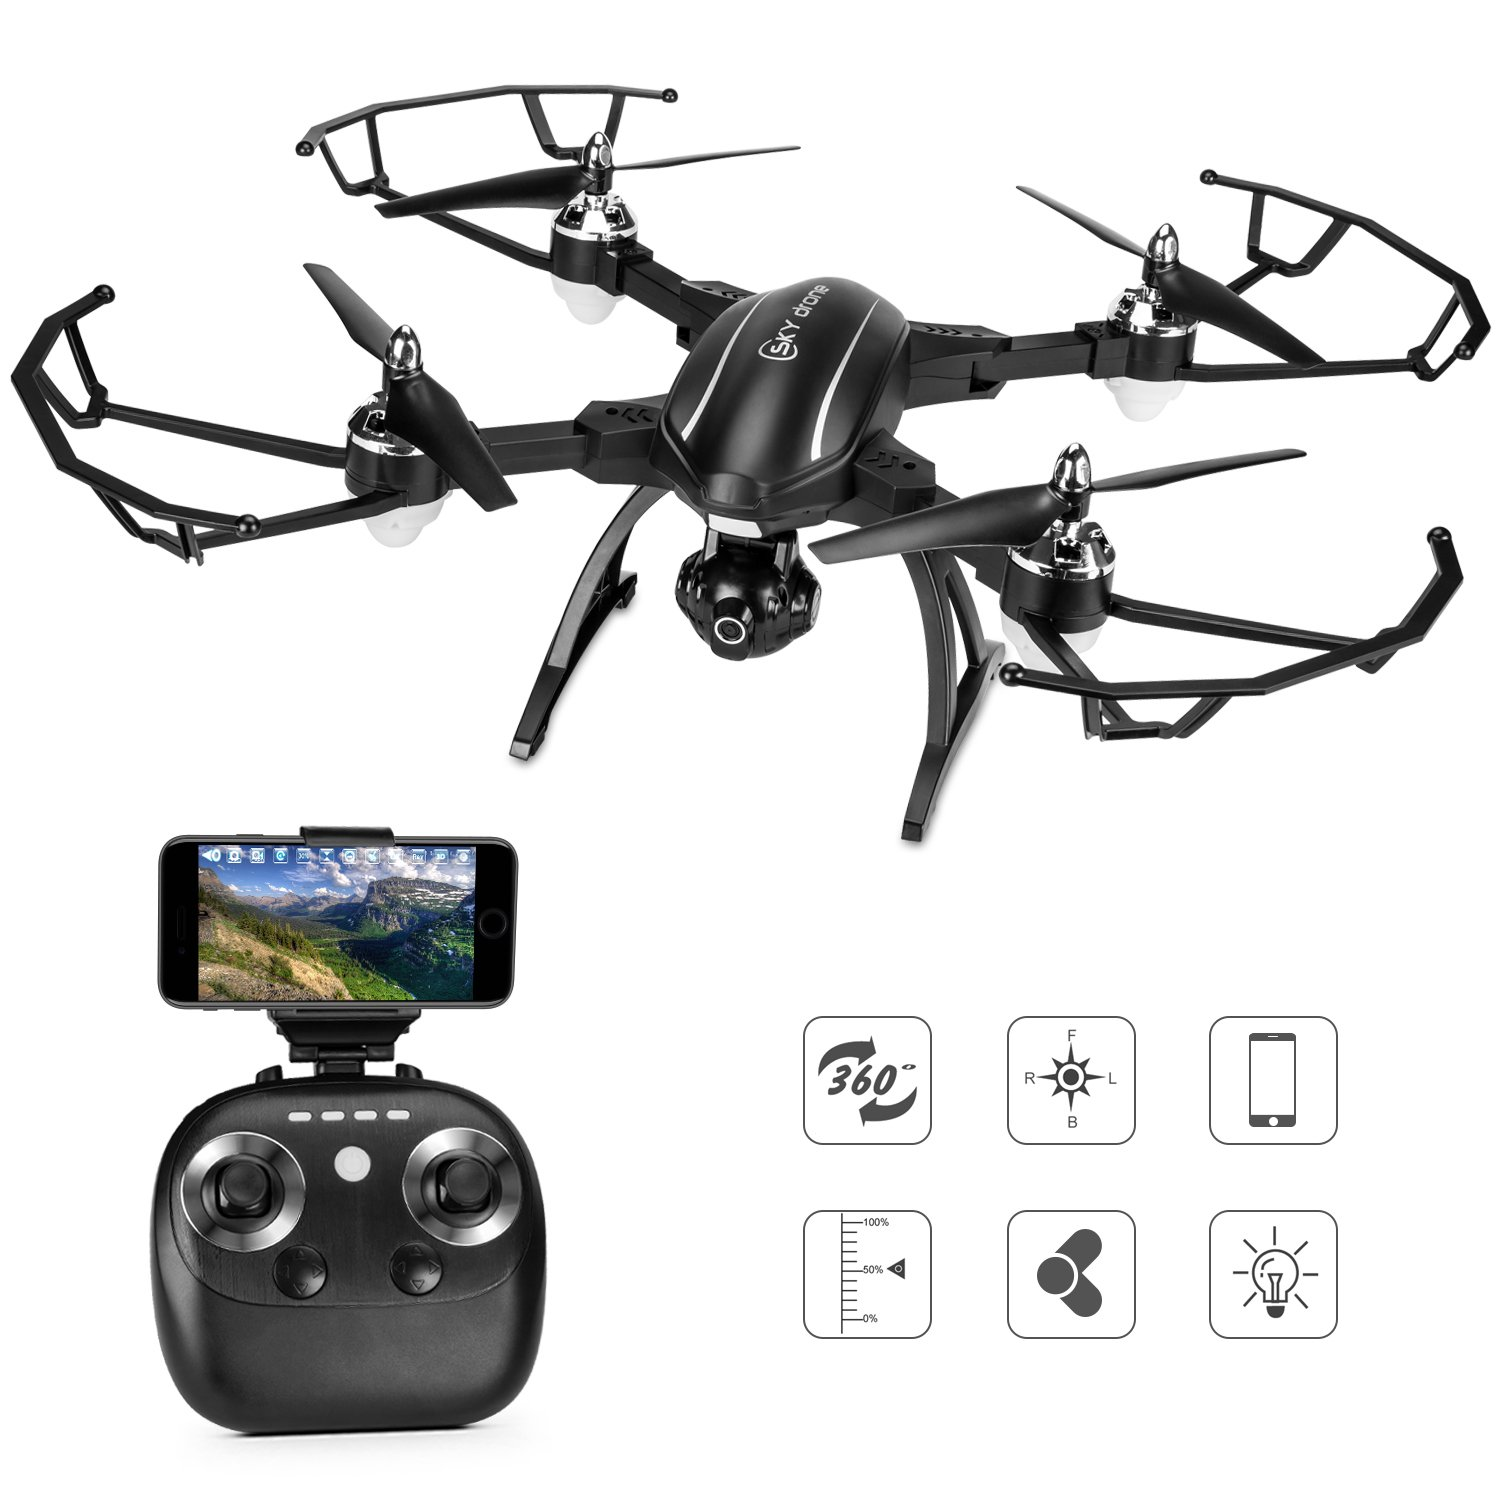 Drone With Camera Live Video, TOQIBO X34 FPV RC Drone with 120° Wide-angle 720P HD Wi-Fi Camera Foldable Drone RTF - Altitude Hold, One Key Take Off/Landing, 3D Flip, APP Control